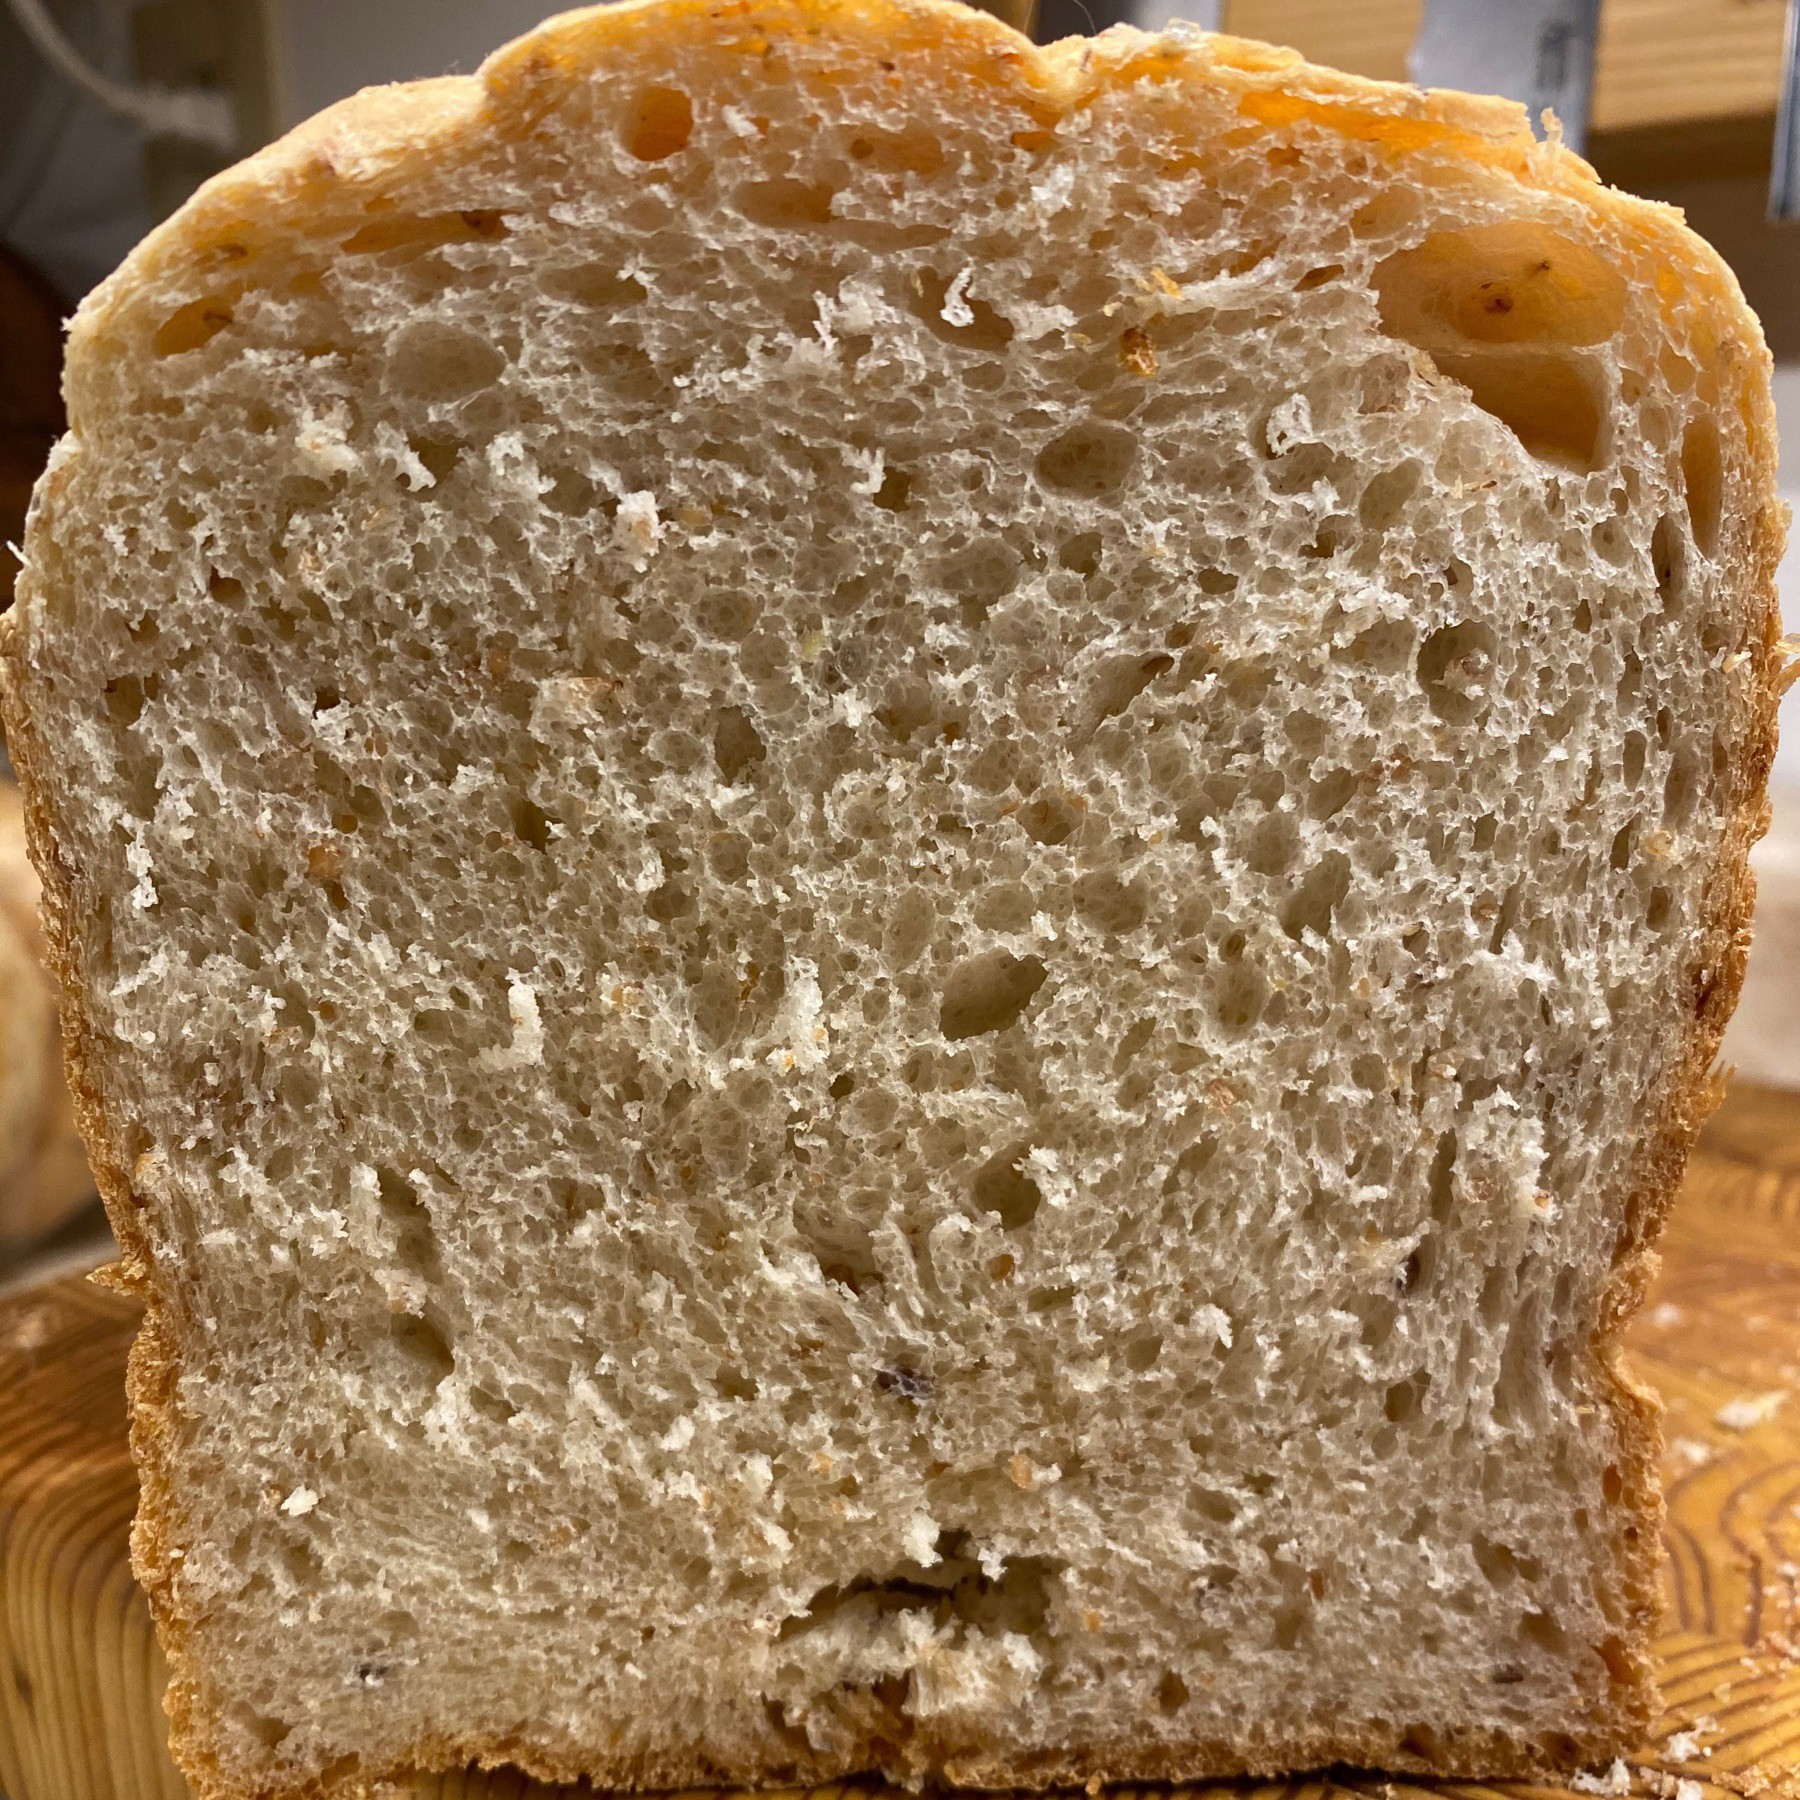 Cross section of bread.